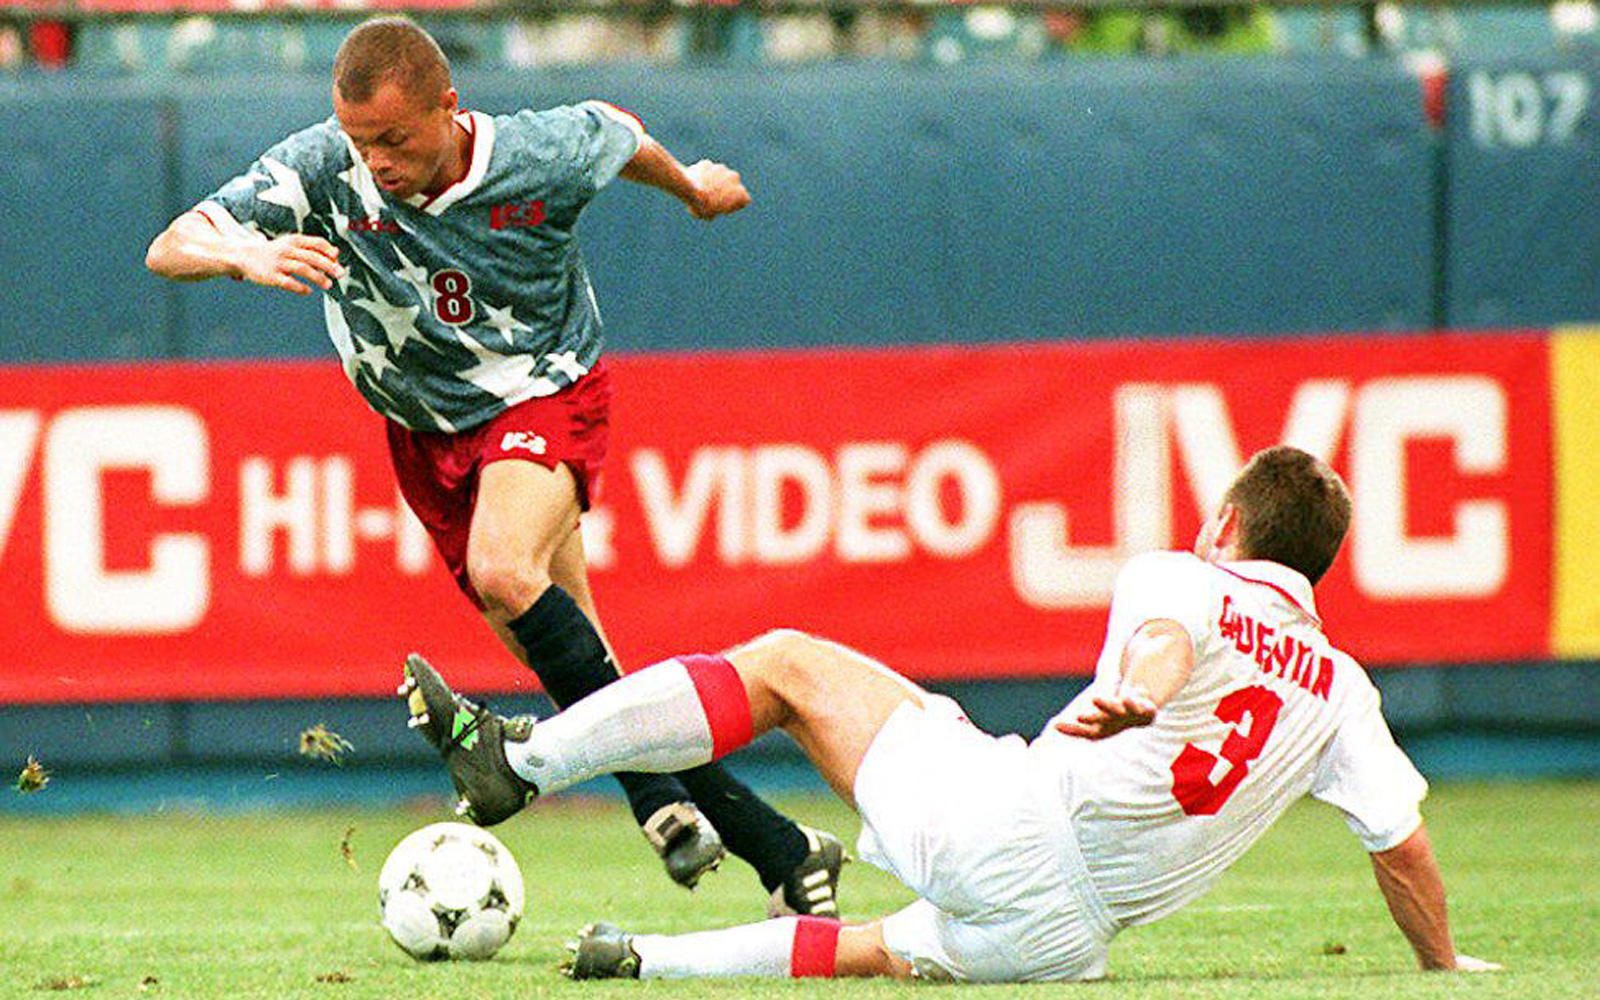 Earnie Stewart maneuvers by Yvan Quentin in the USA's 1-1 1994 World Cup draw vs. Switzerland.